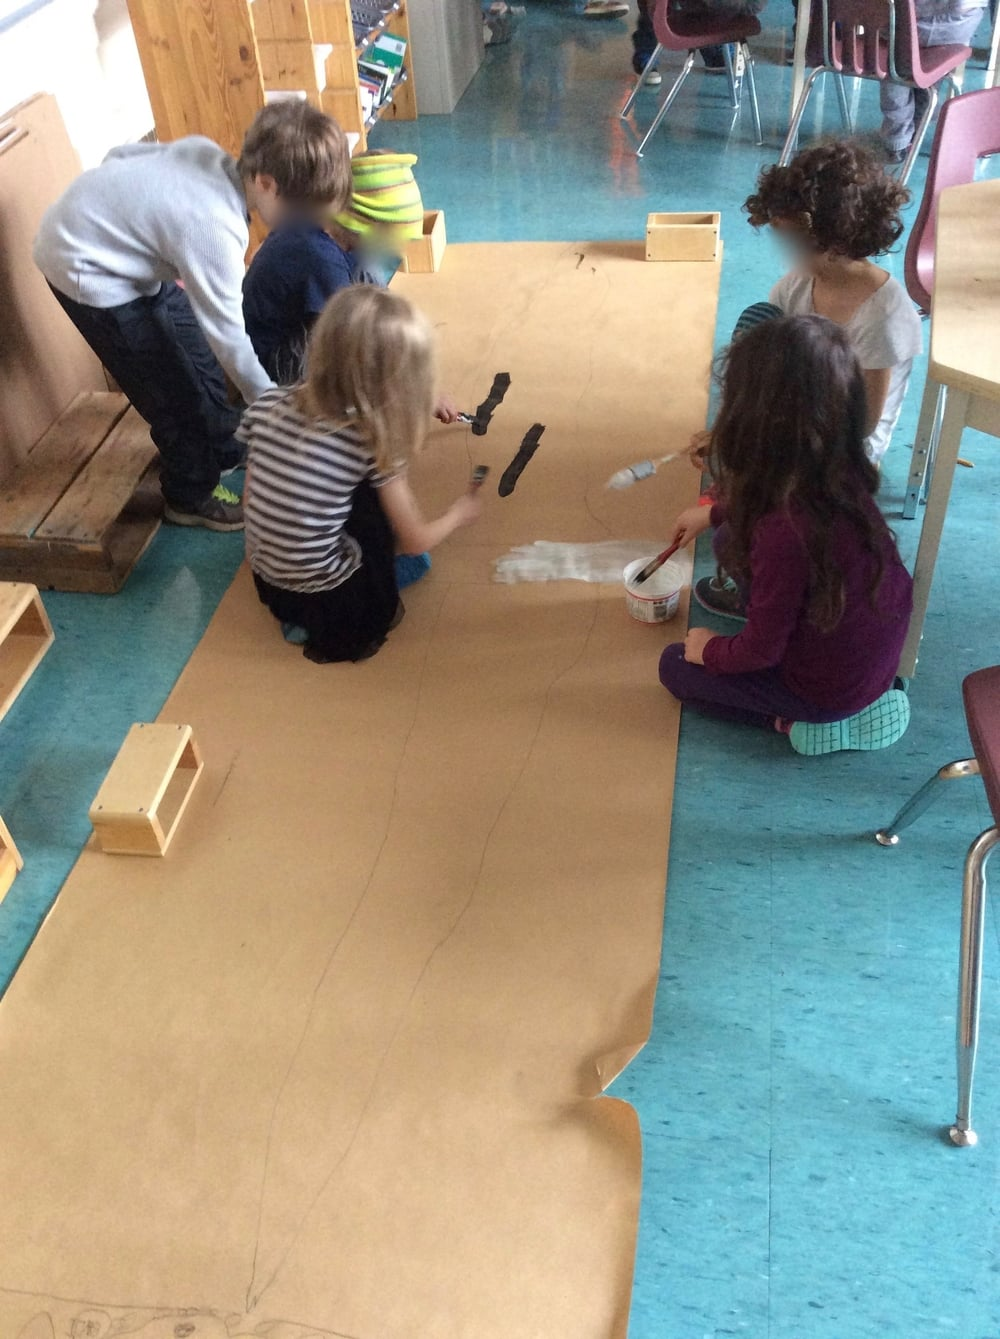 A group of students measured the wingspan of a wandering albatross (300cm), then painted the wings on mural paper.